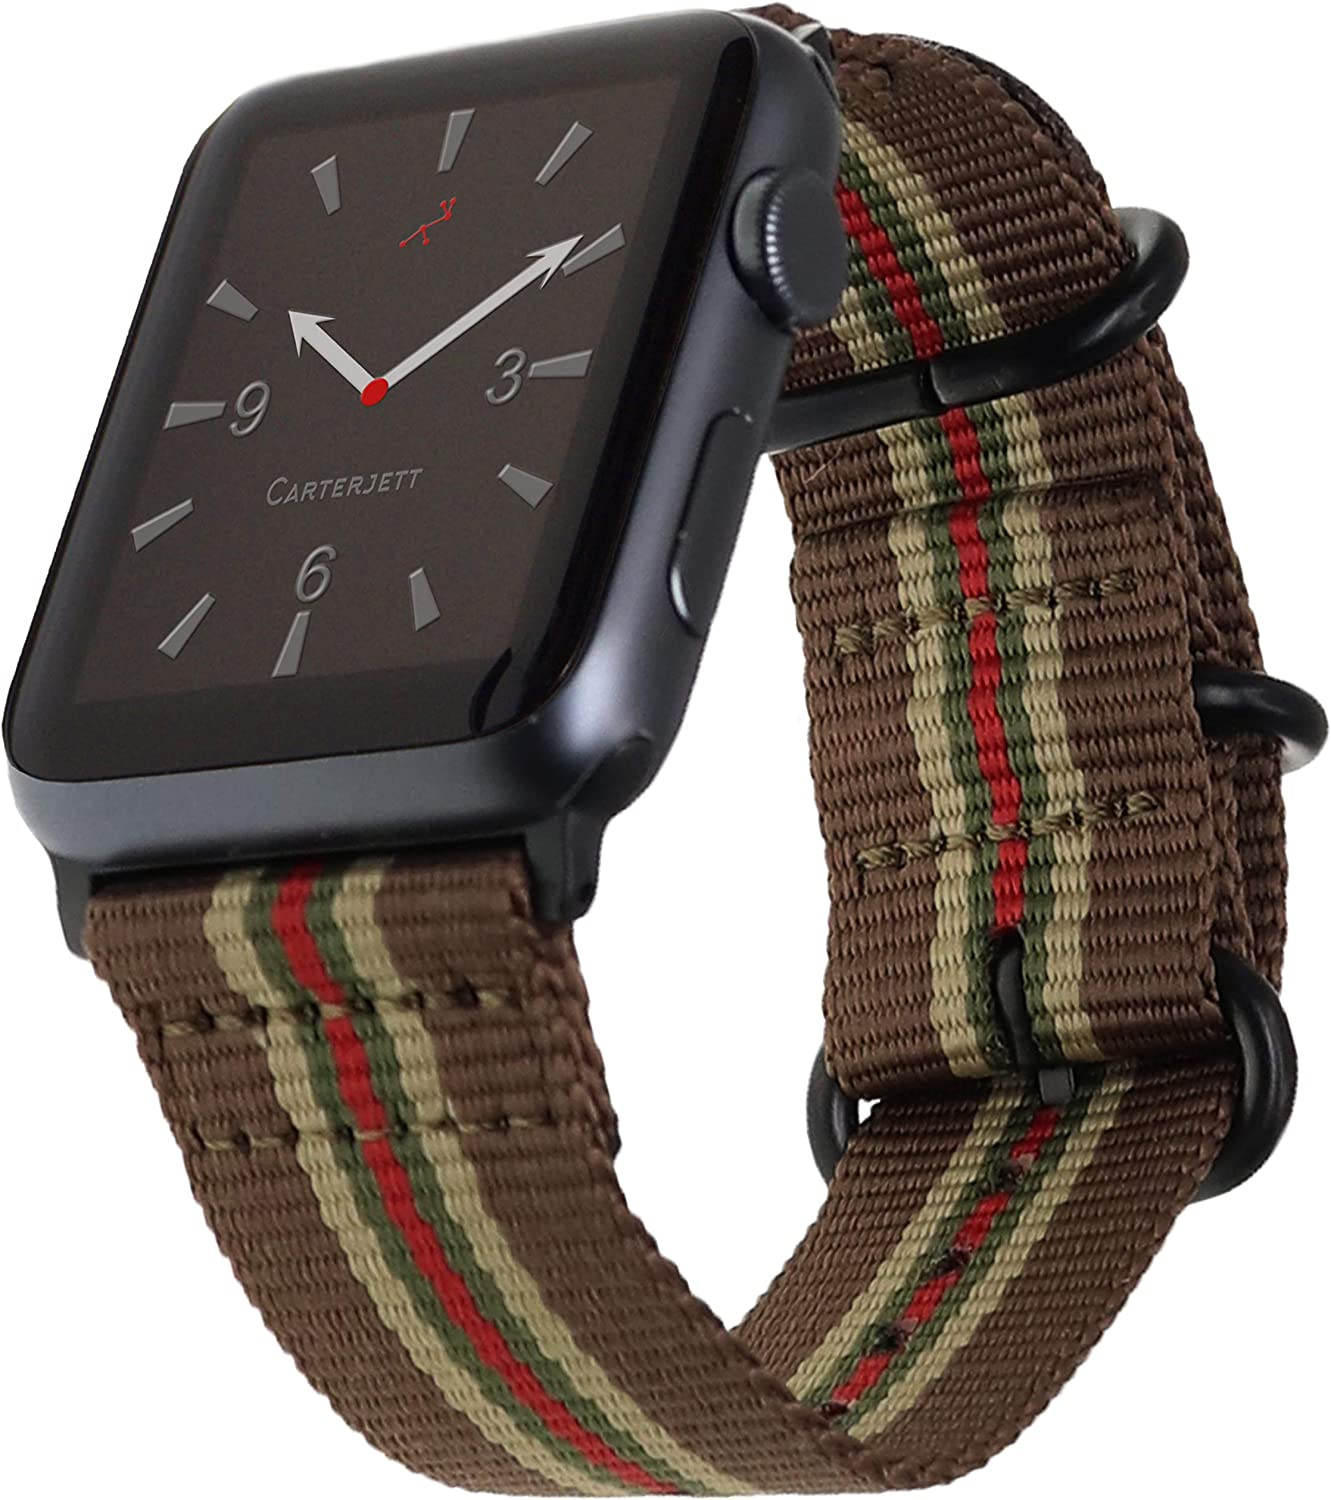 Carterjett Compatible with Apple Watch Band 42mm 44mm Nylon Vegas Stripe iWatch Bands Retro Brown Replacement Strap Durable Adapters Buckle for Series 5 Series 4 3 2 1 (42 44 S/M/L Vegas Stripe)